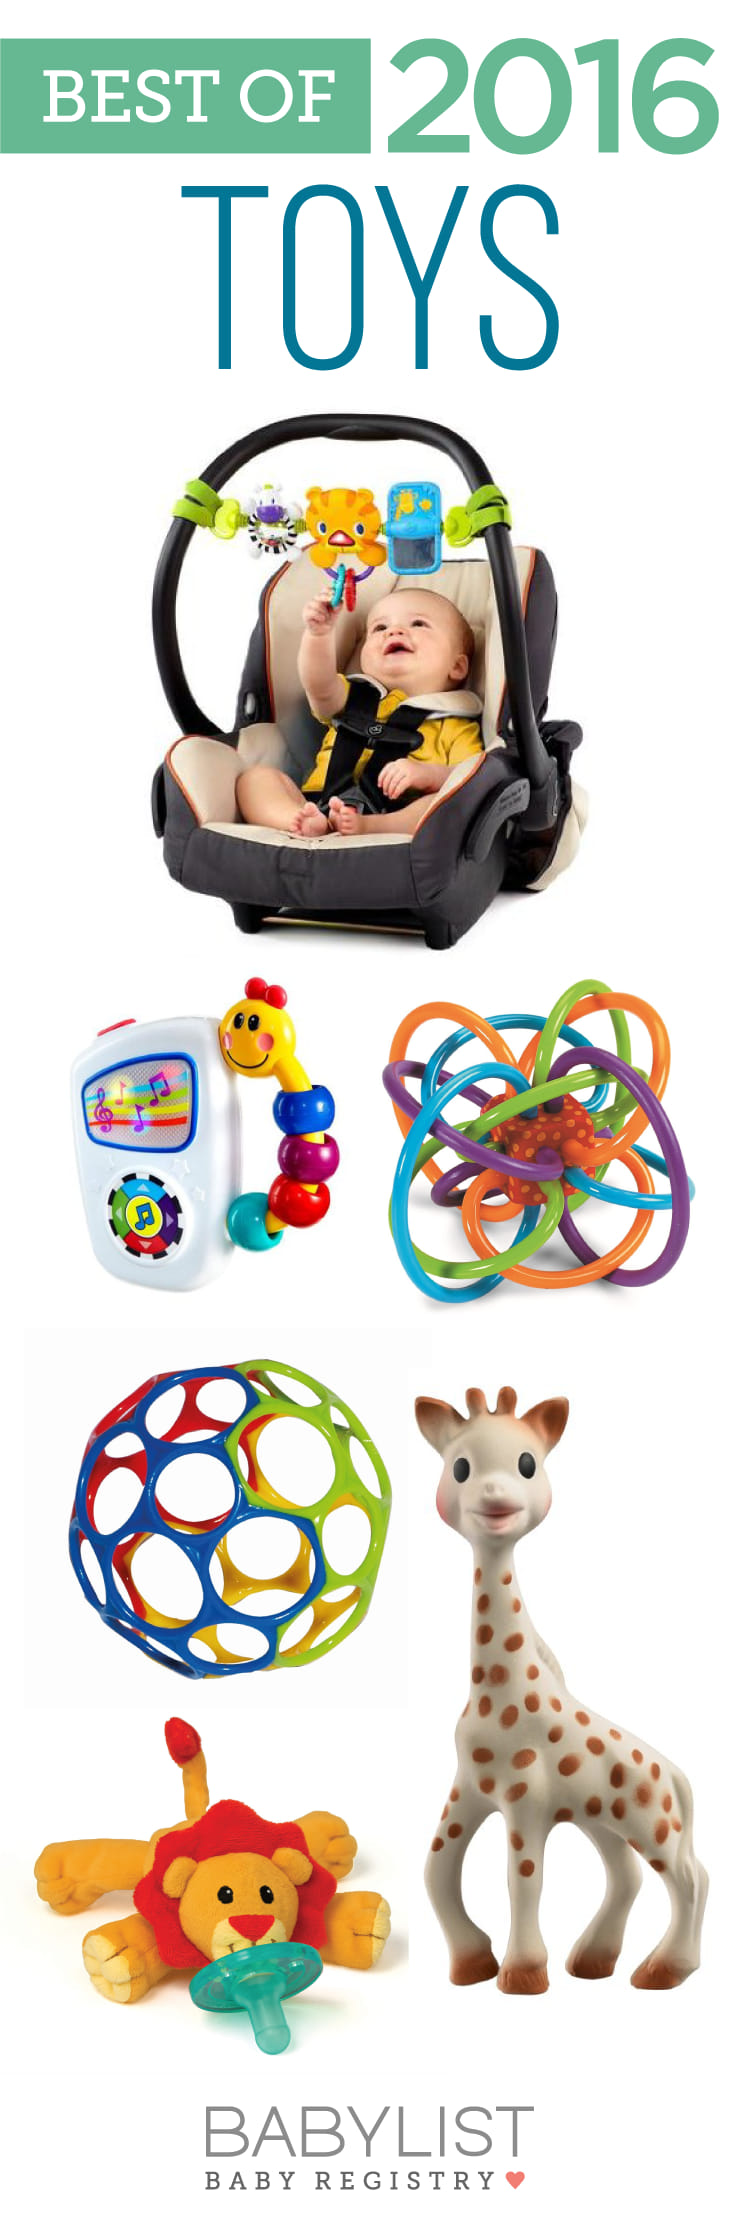 It's all fun and games with these favorites that will delight your child.